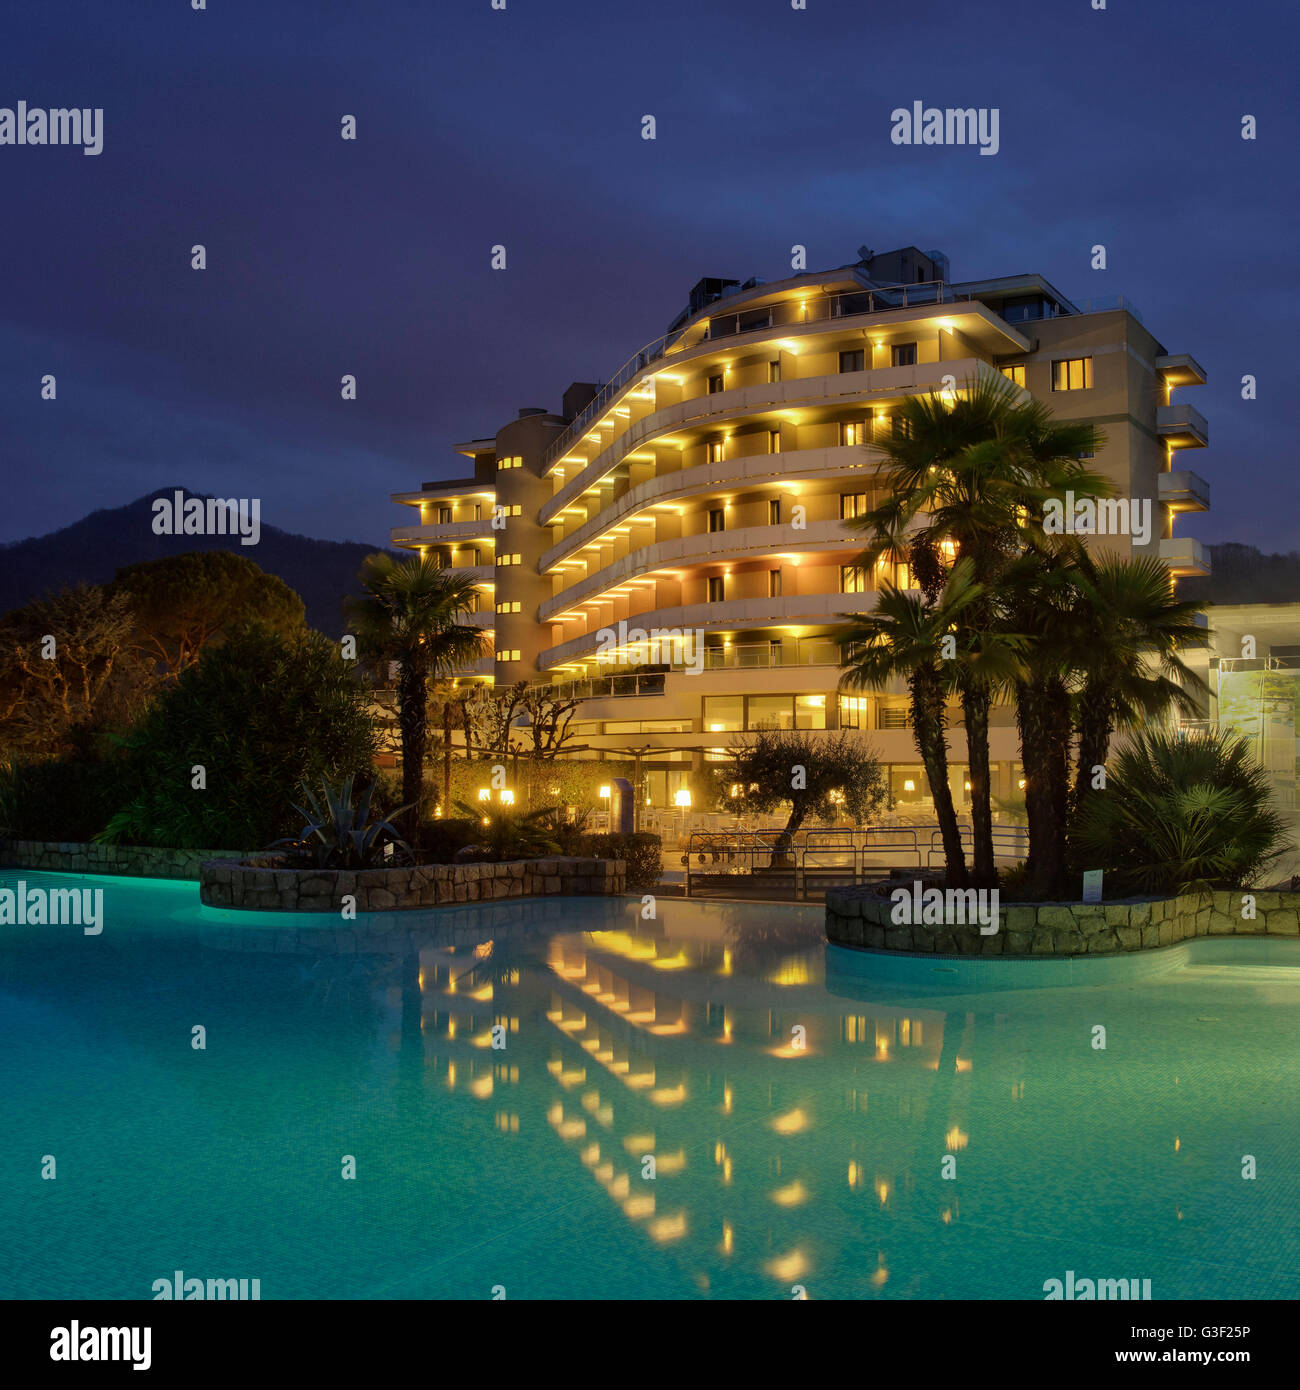 Hotel Radisson Blu Majestic, Italy, Veneto, Galzignano, Battaglia Therme, wellness, spa - Stock Image